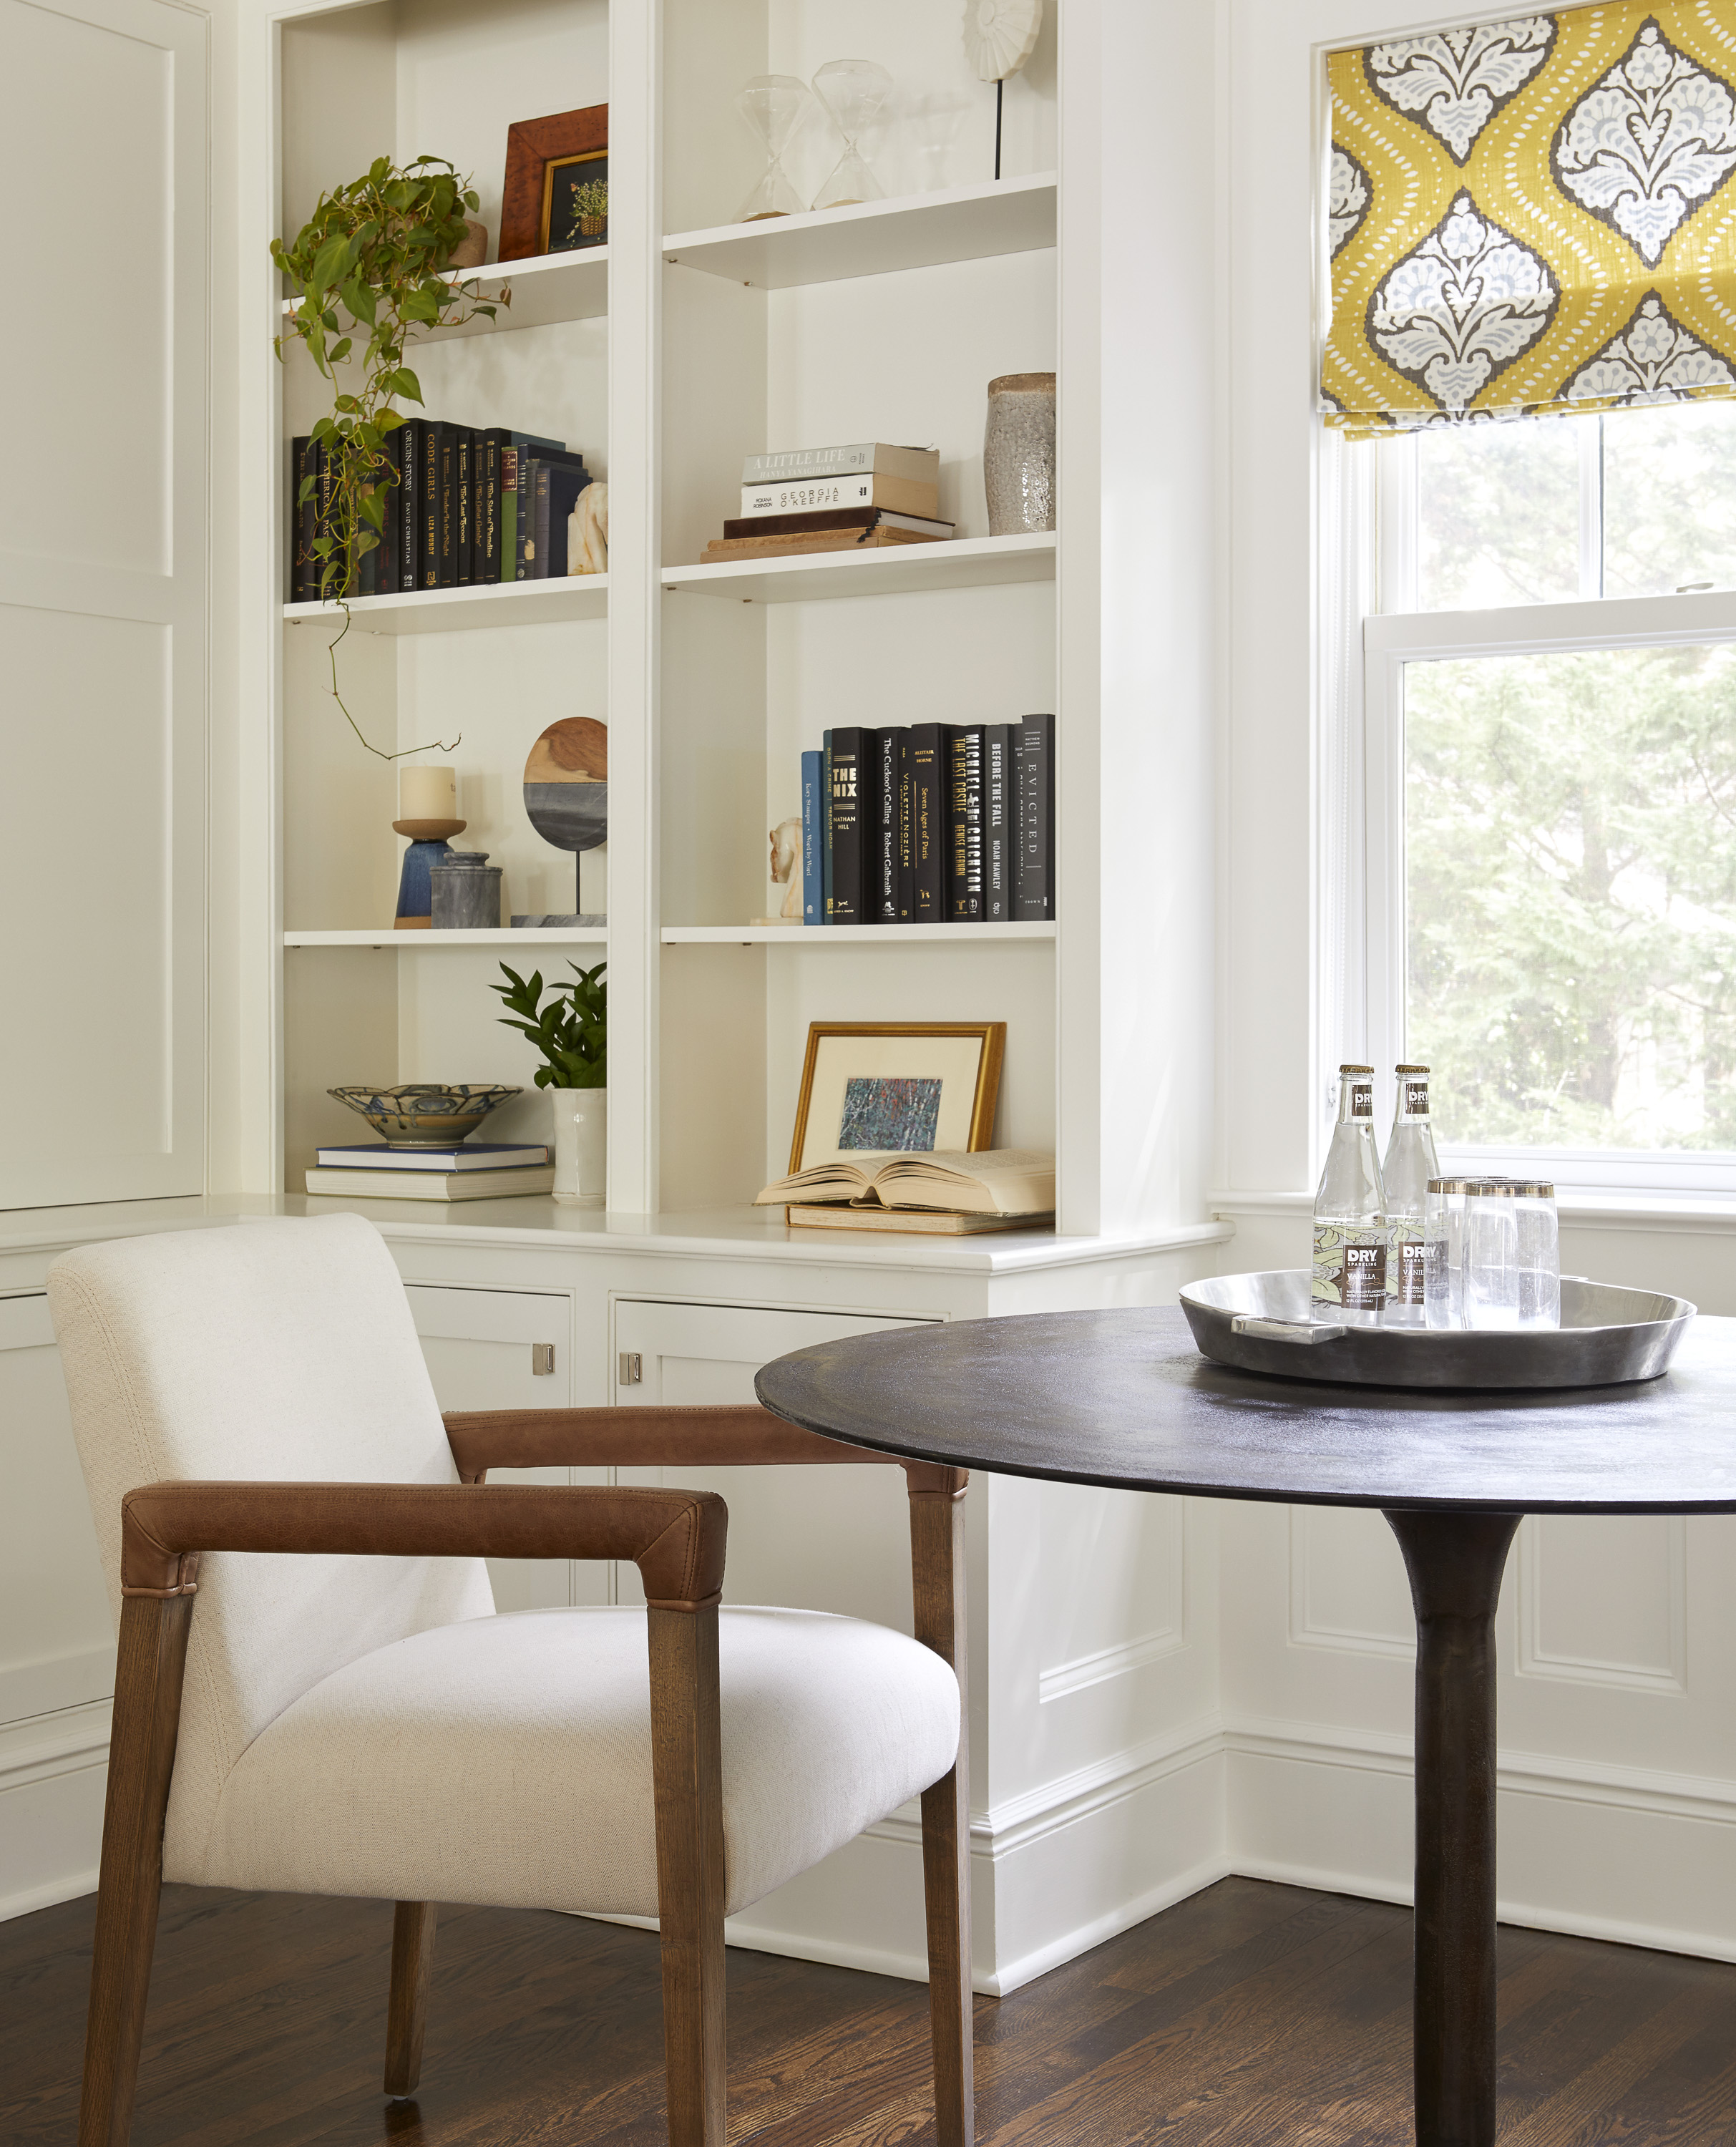 new jersey home tour storage details chair and table